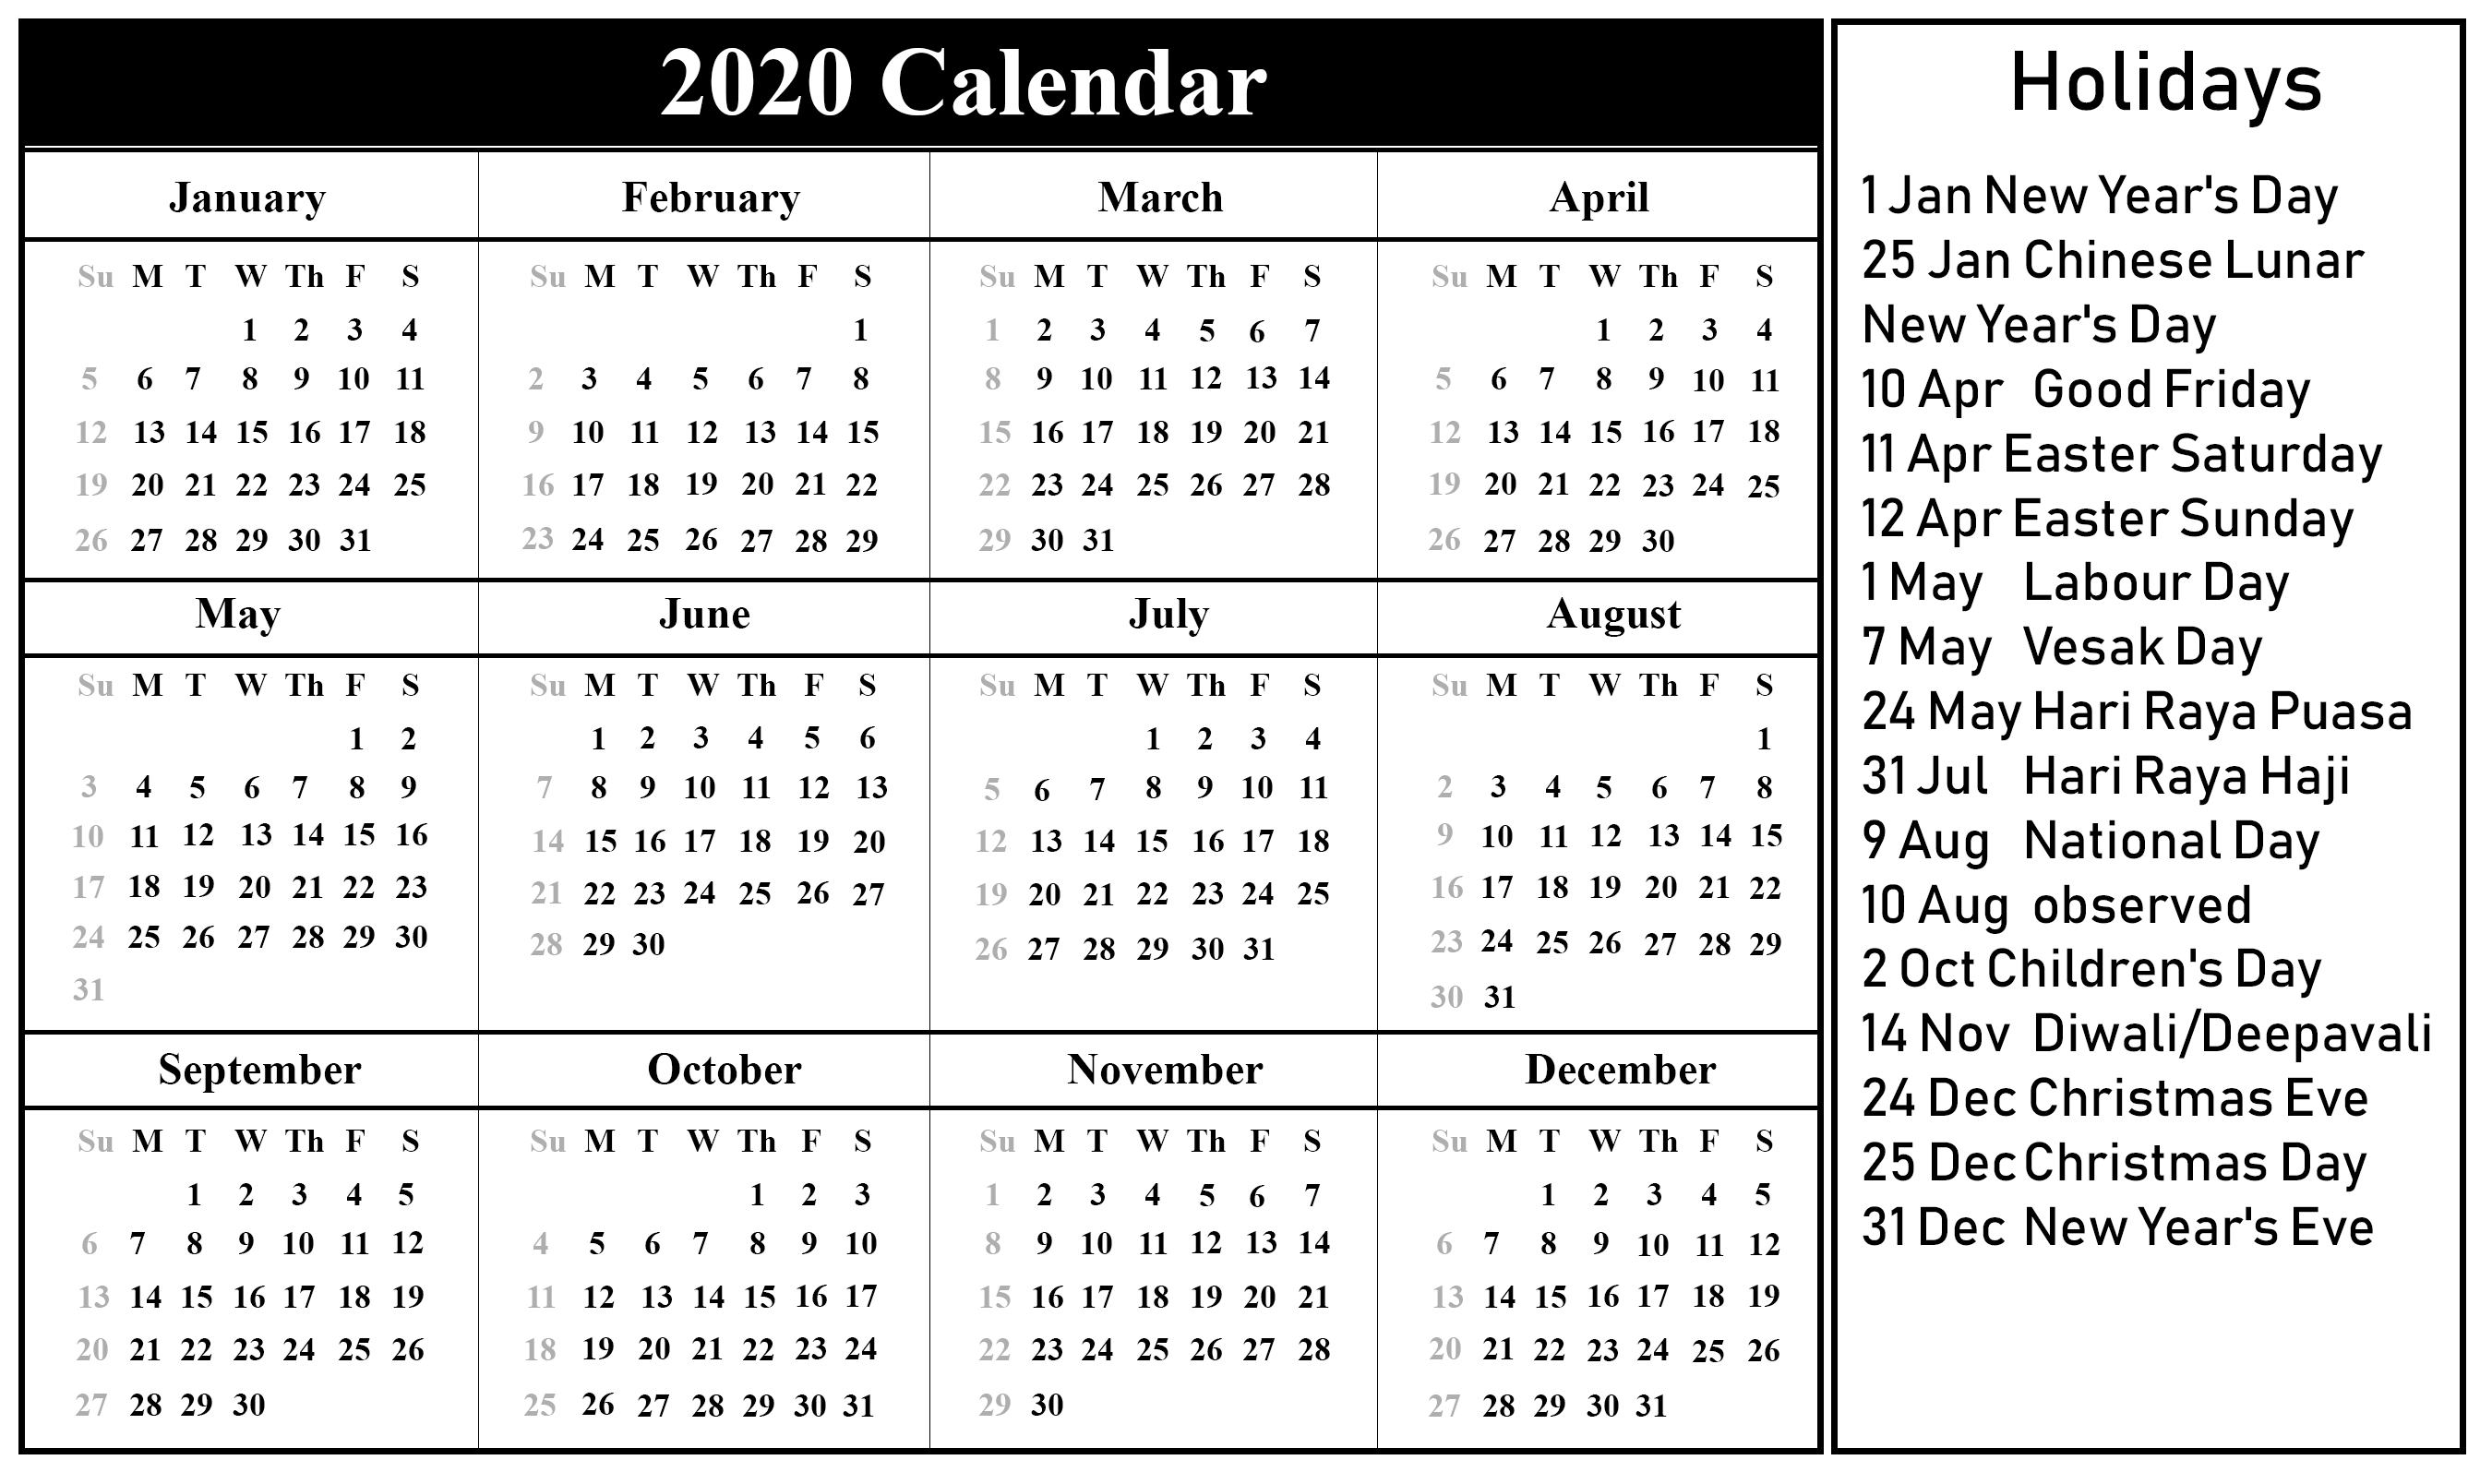 National Day Calendar 2020 | 2020 Calendar